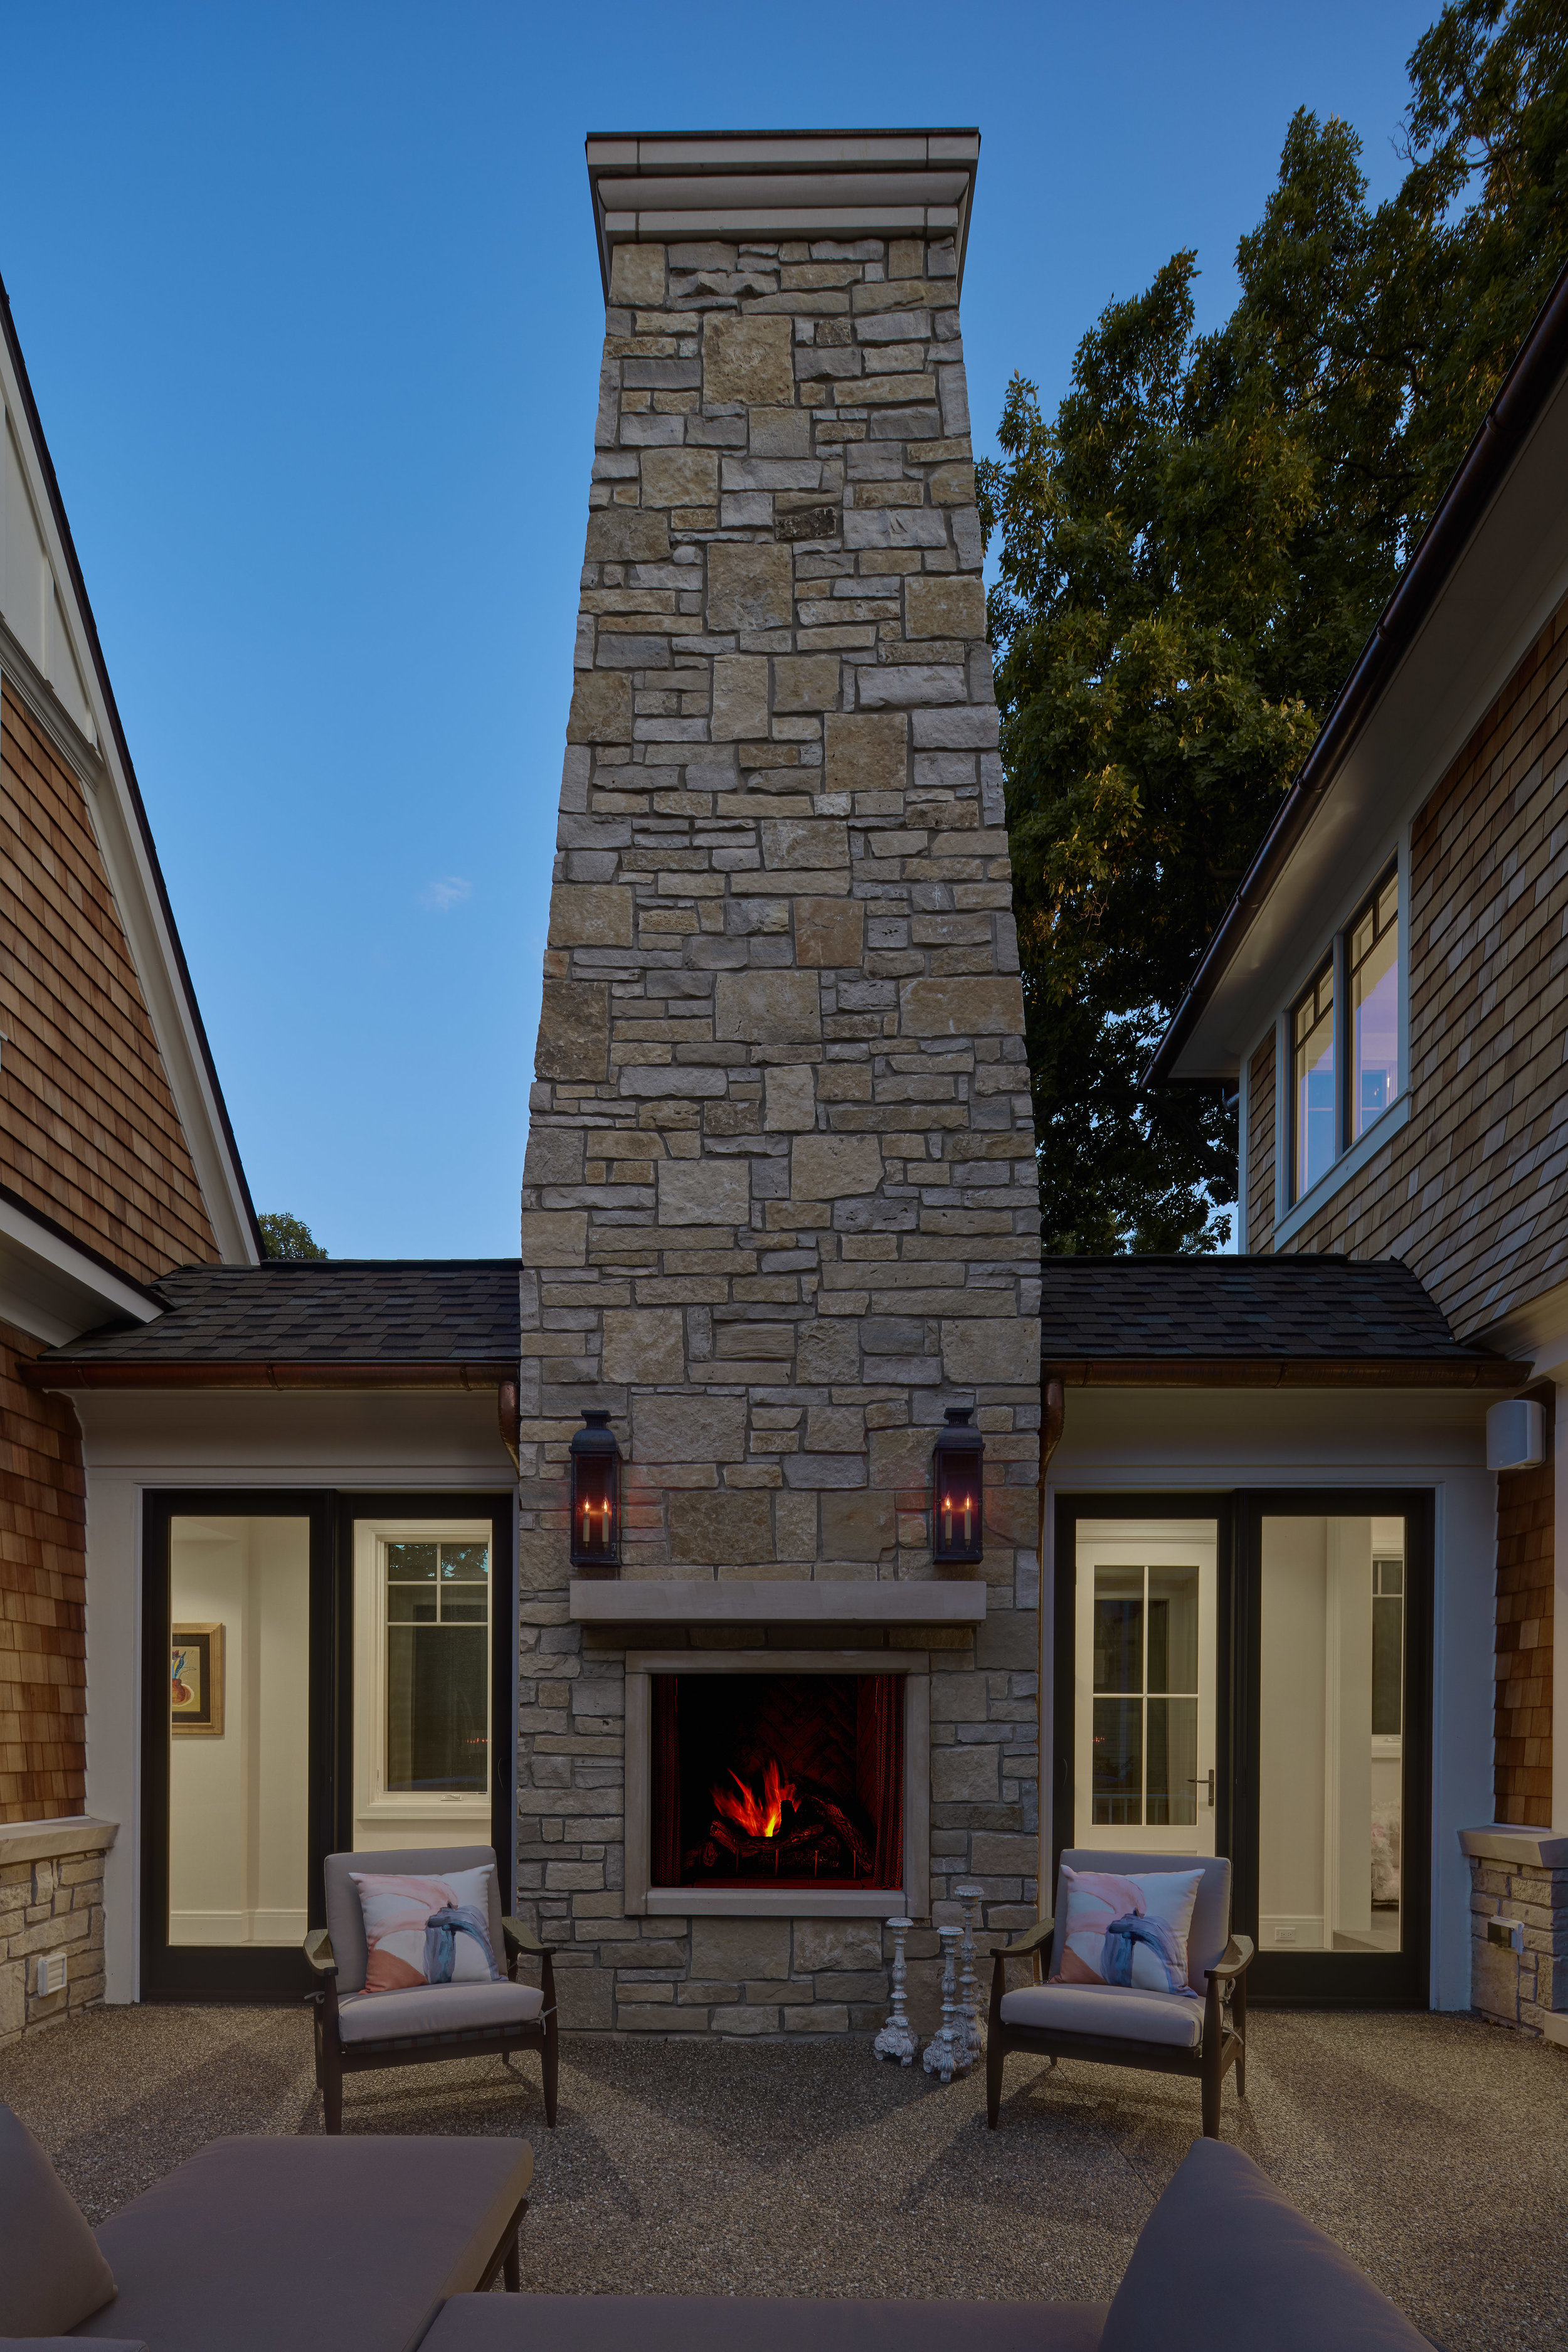 7-19-18-HM-Homes-629 Pierce-exteriors-0885And8more_Fusion-Natural-cooler lower.jpg